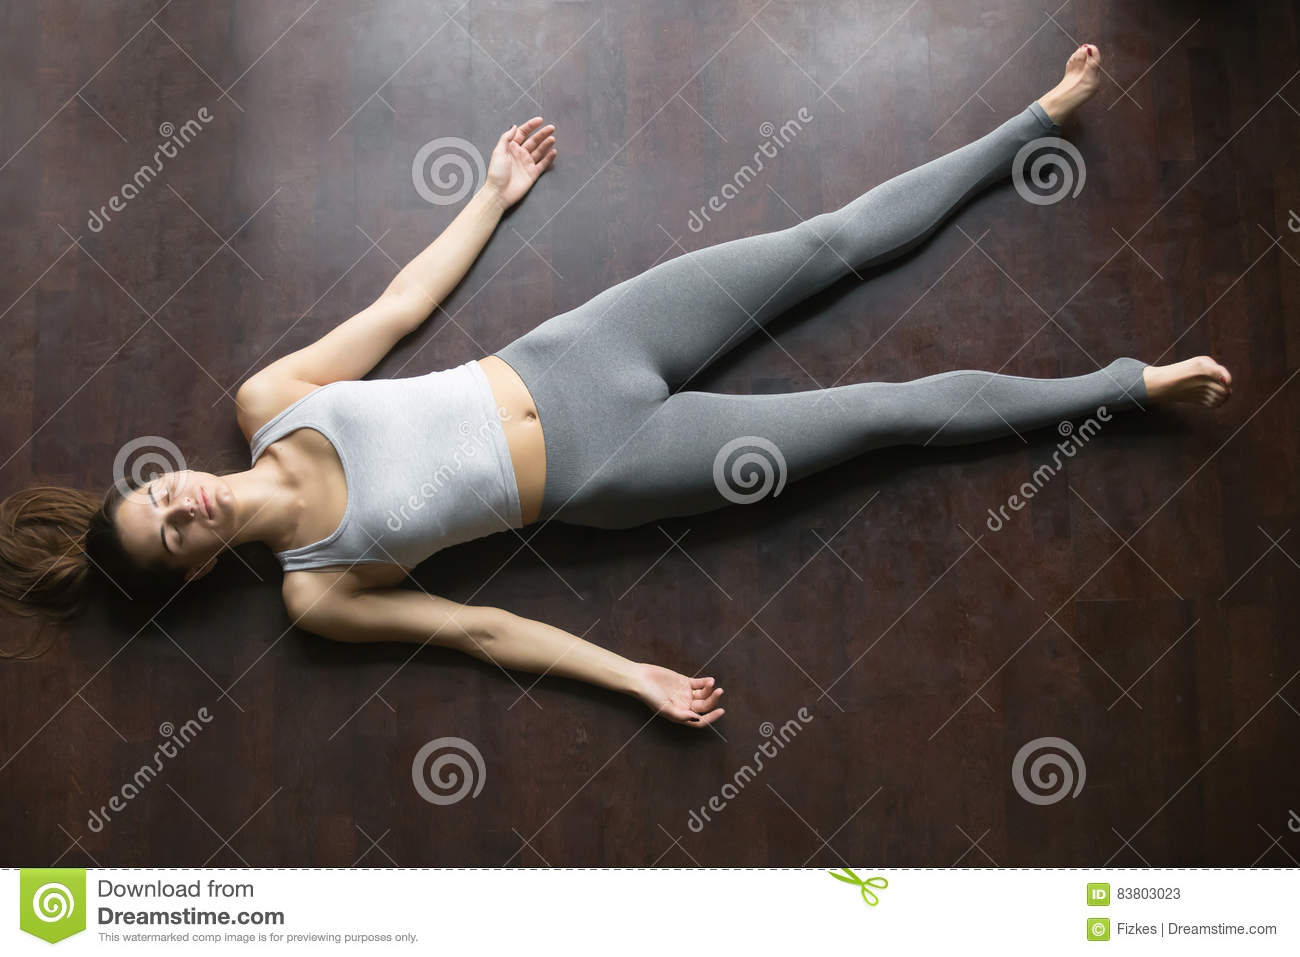 Top View Of Shavasana Yoga Posture Stock Photo - Image: 83803023